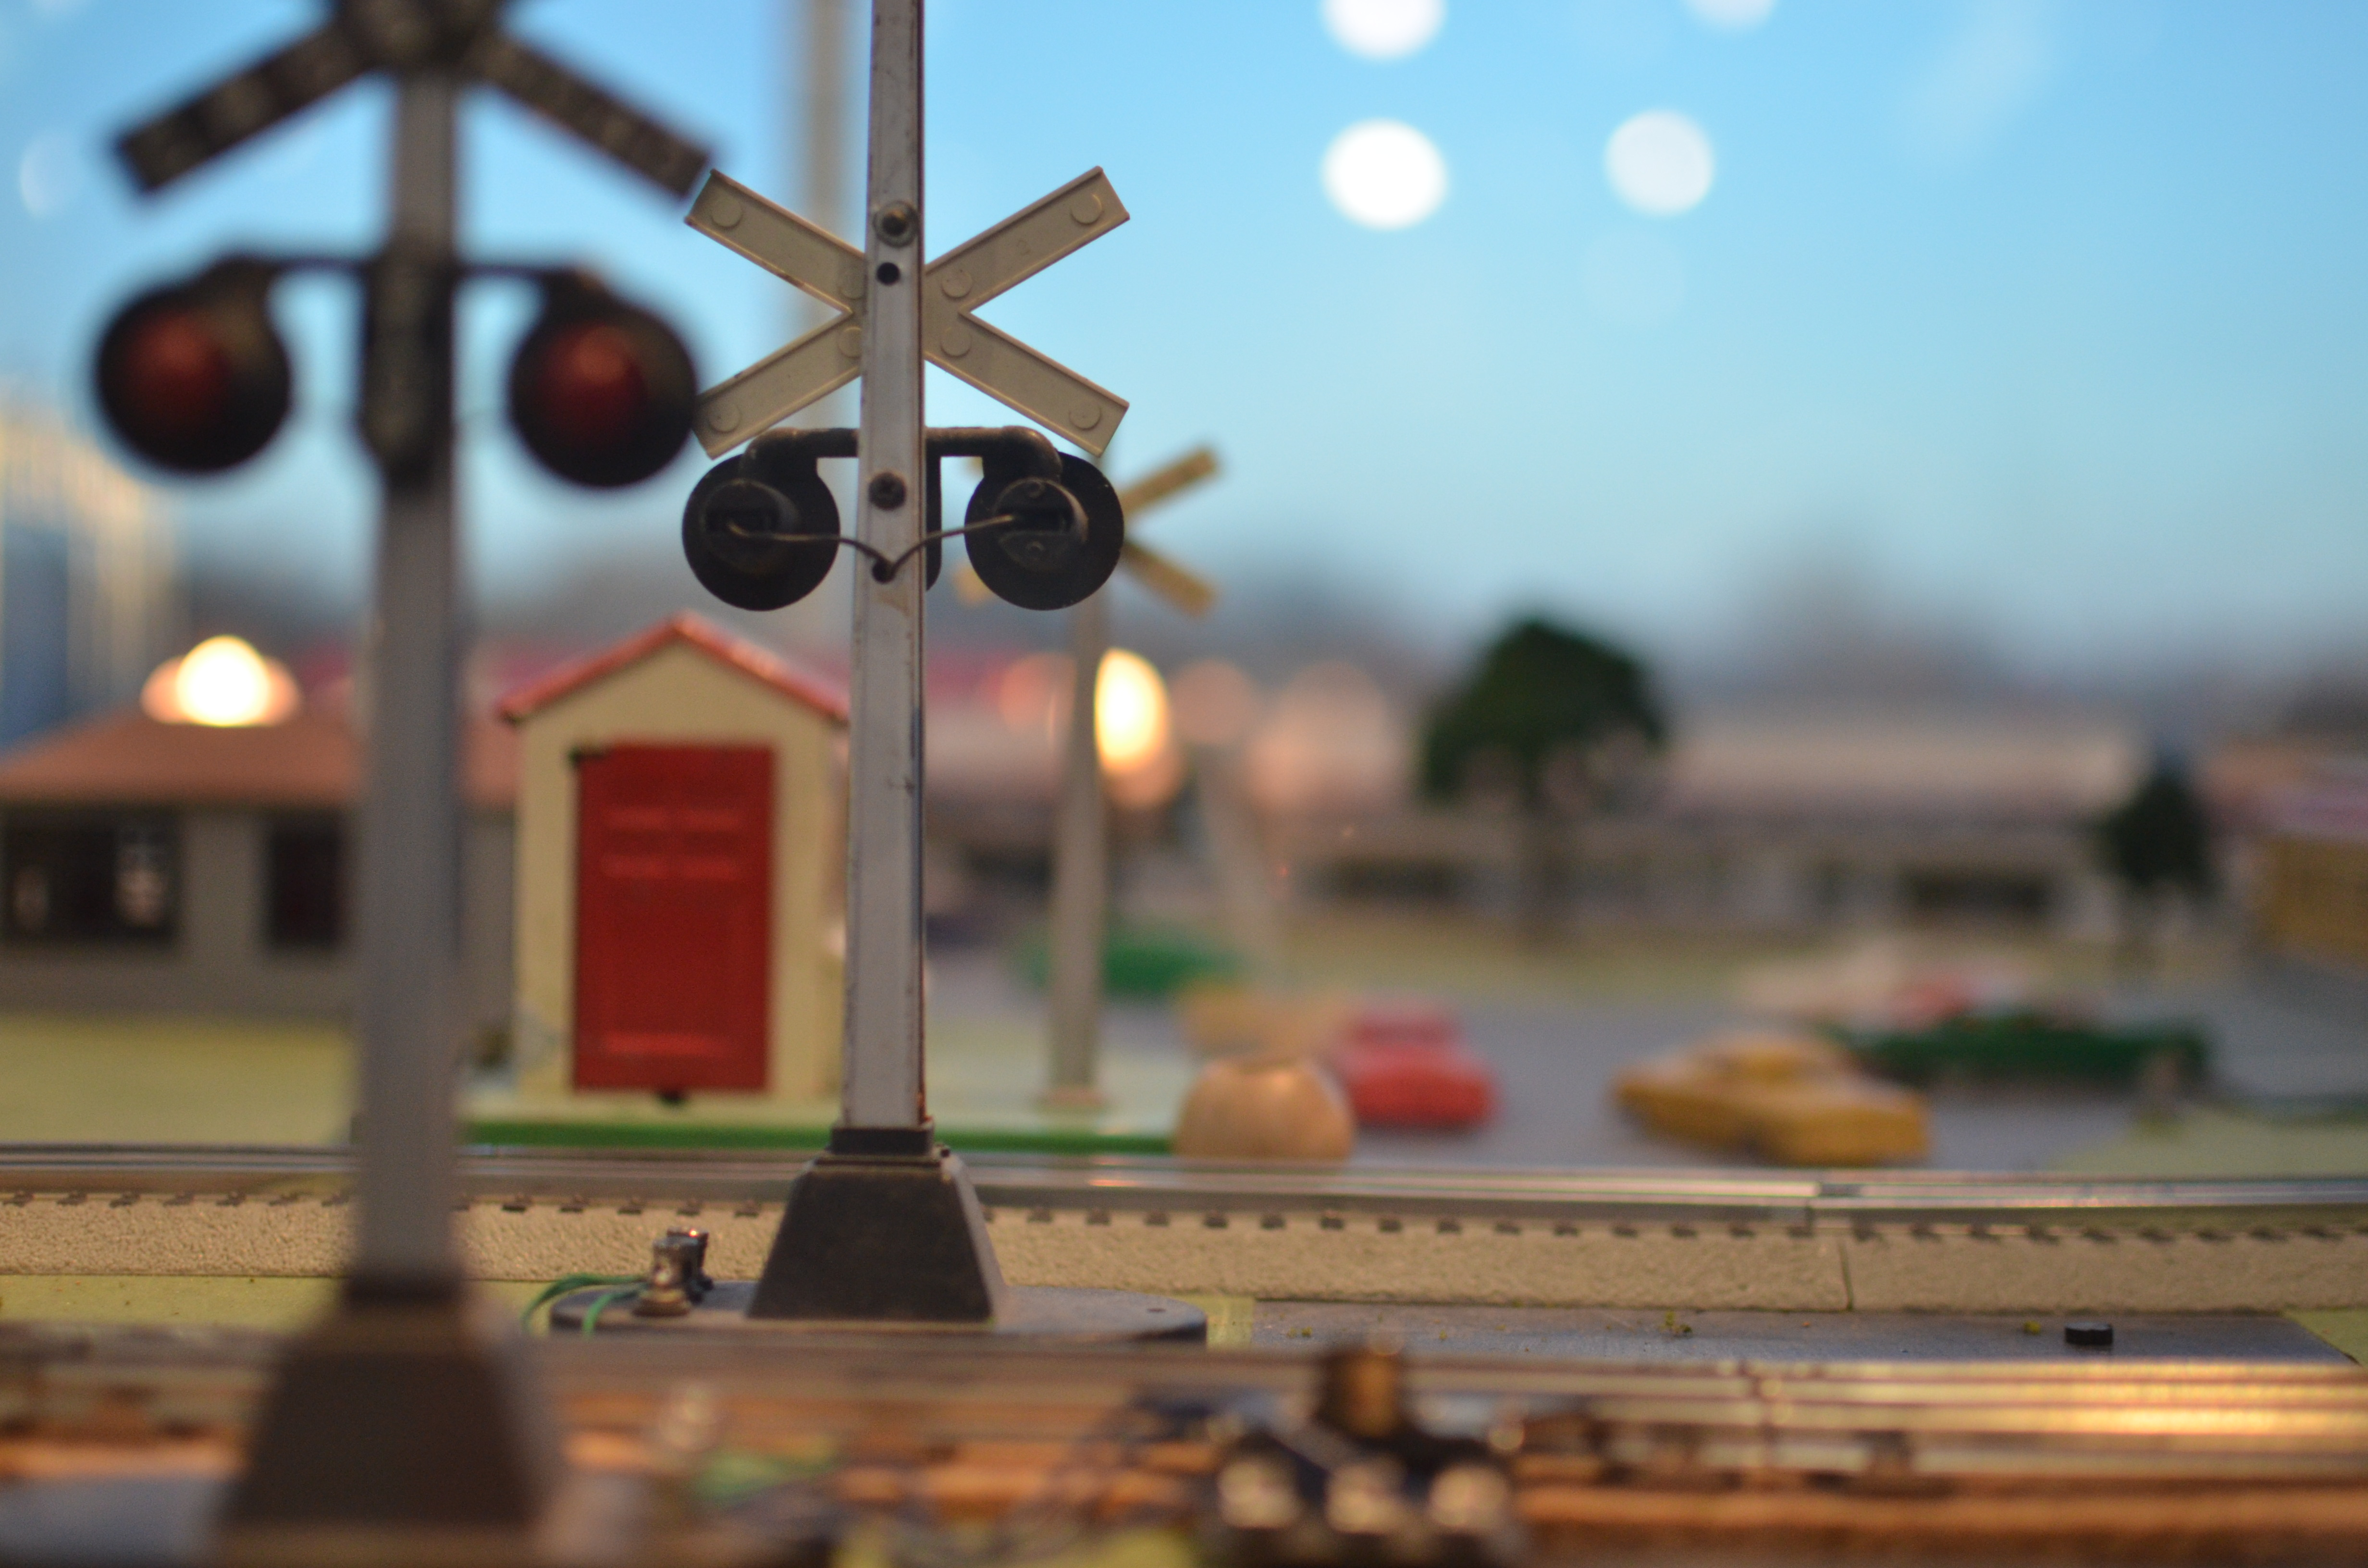 Toy Railroad Crossing | Toy Railroad Crossing | Flickr ...